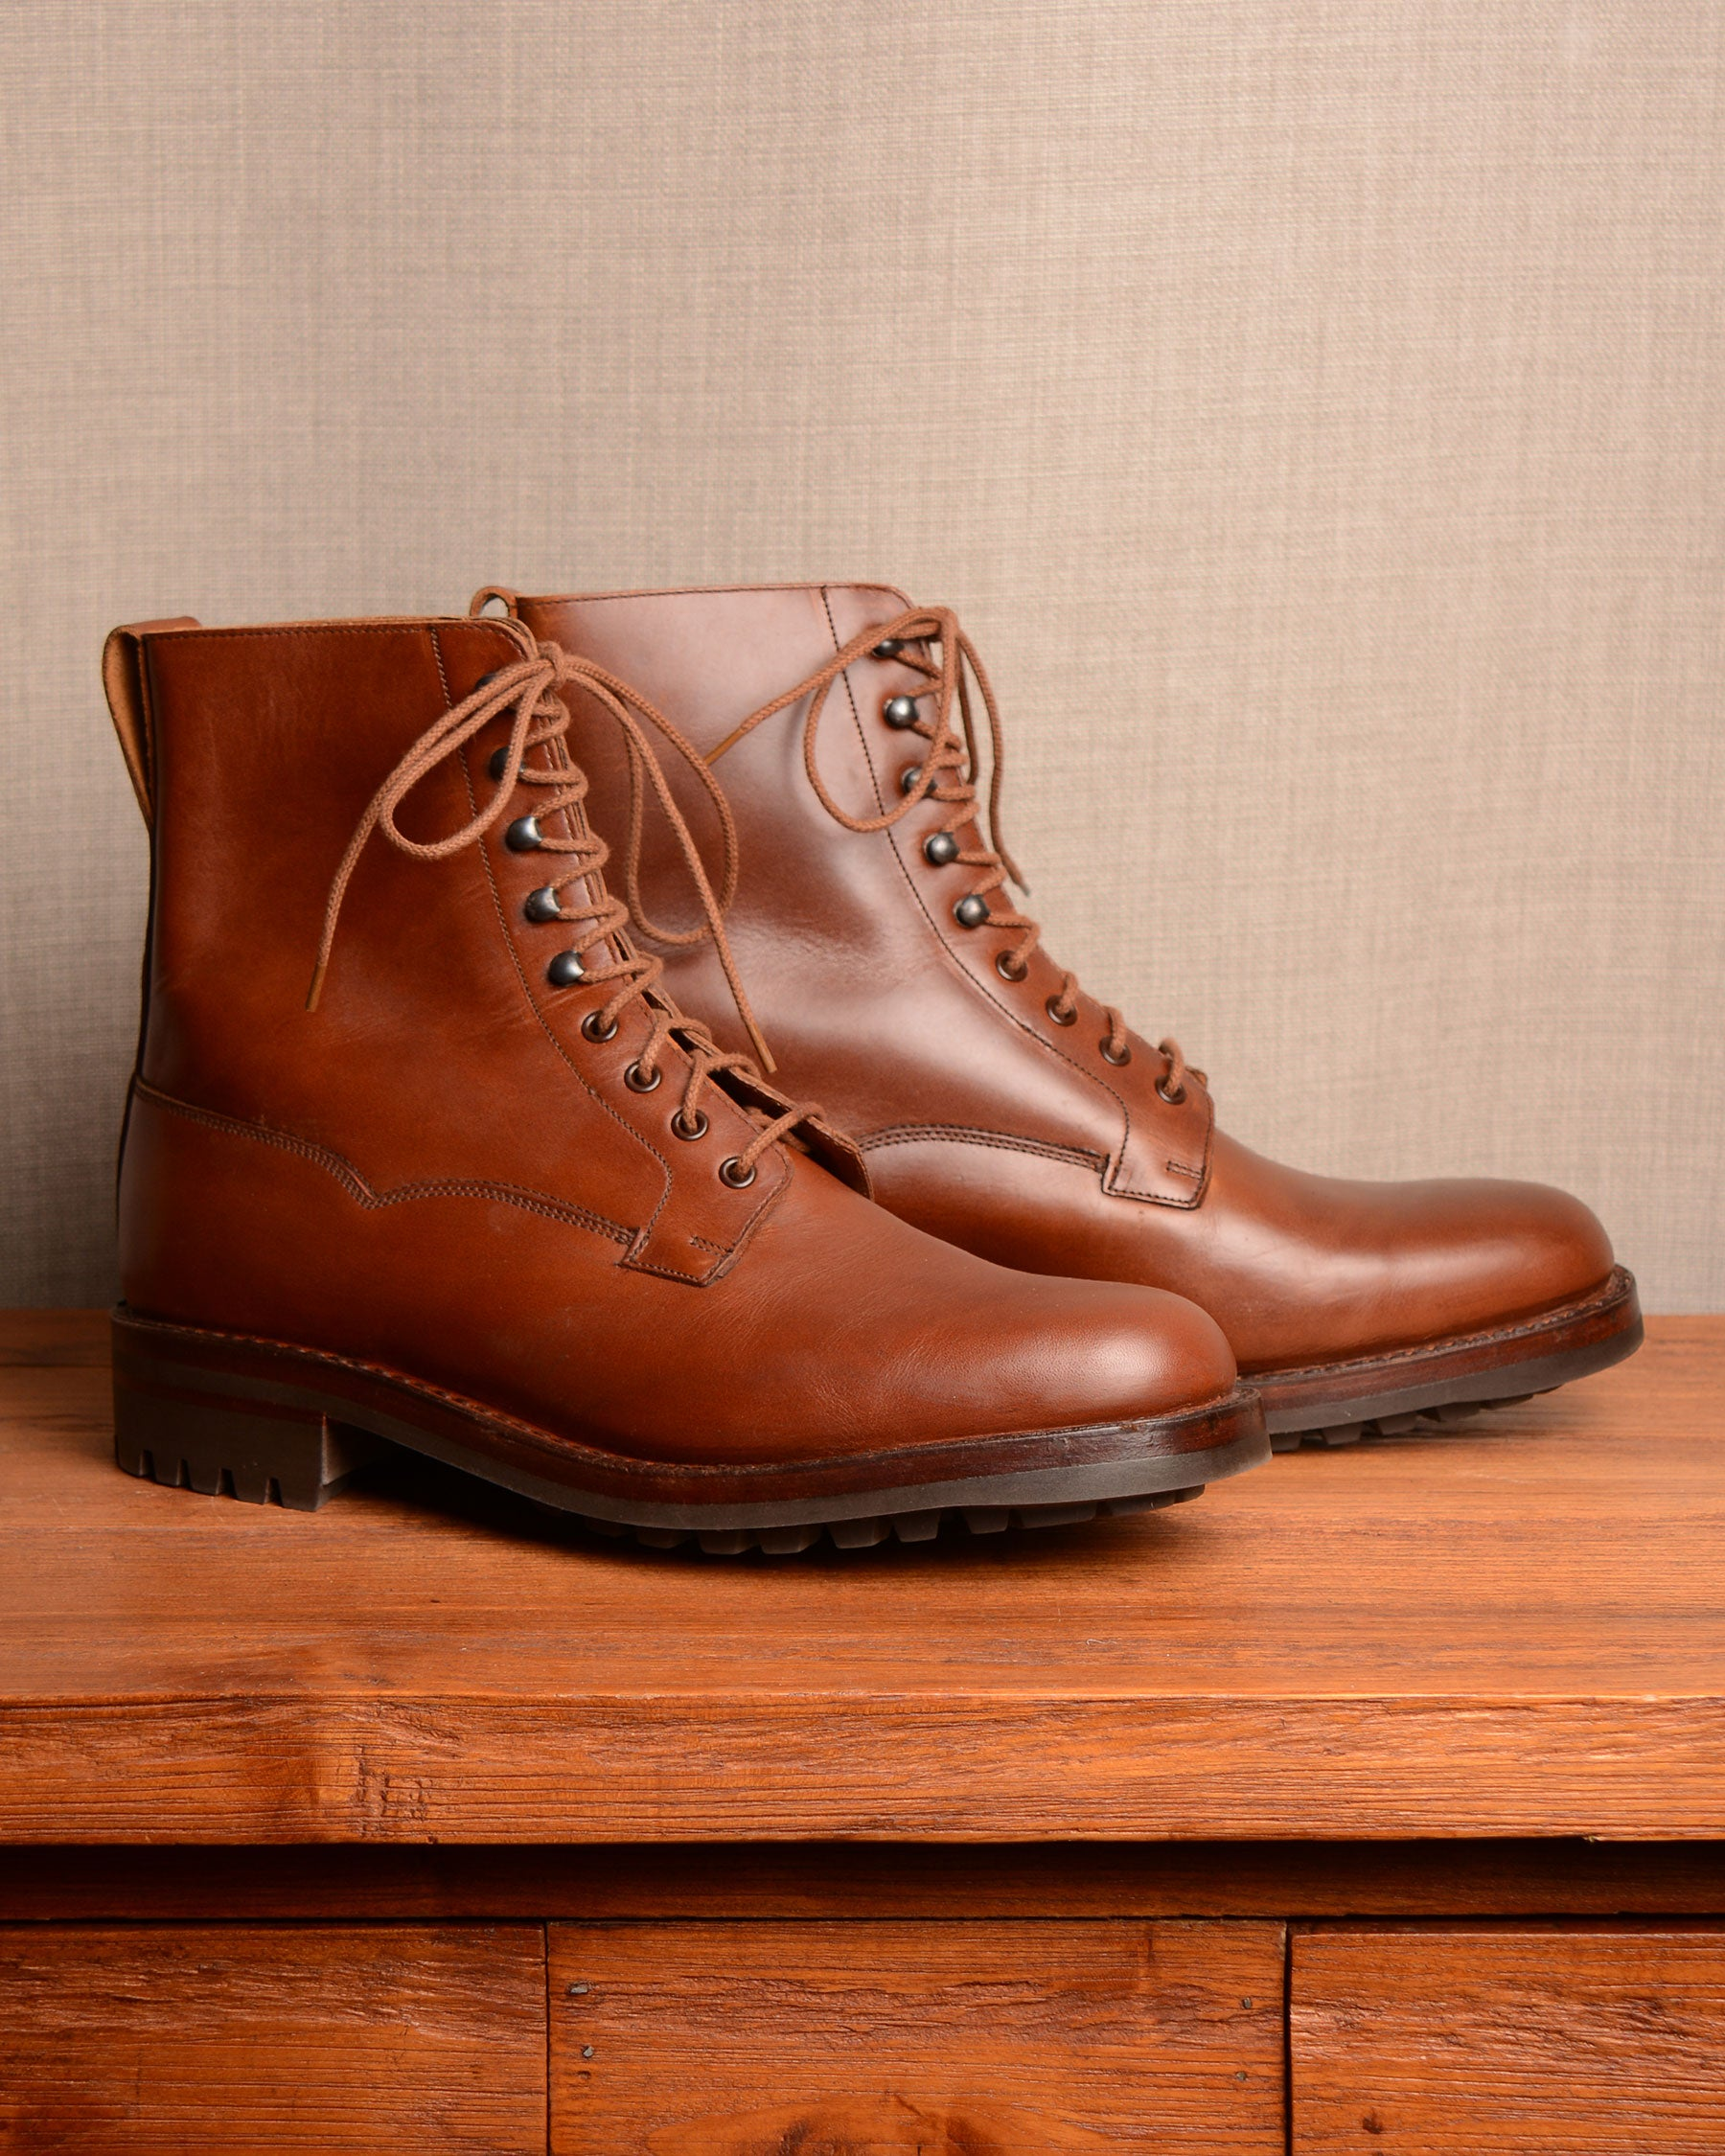 Crockett & Jones Snowdon - Oak